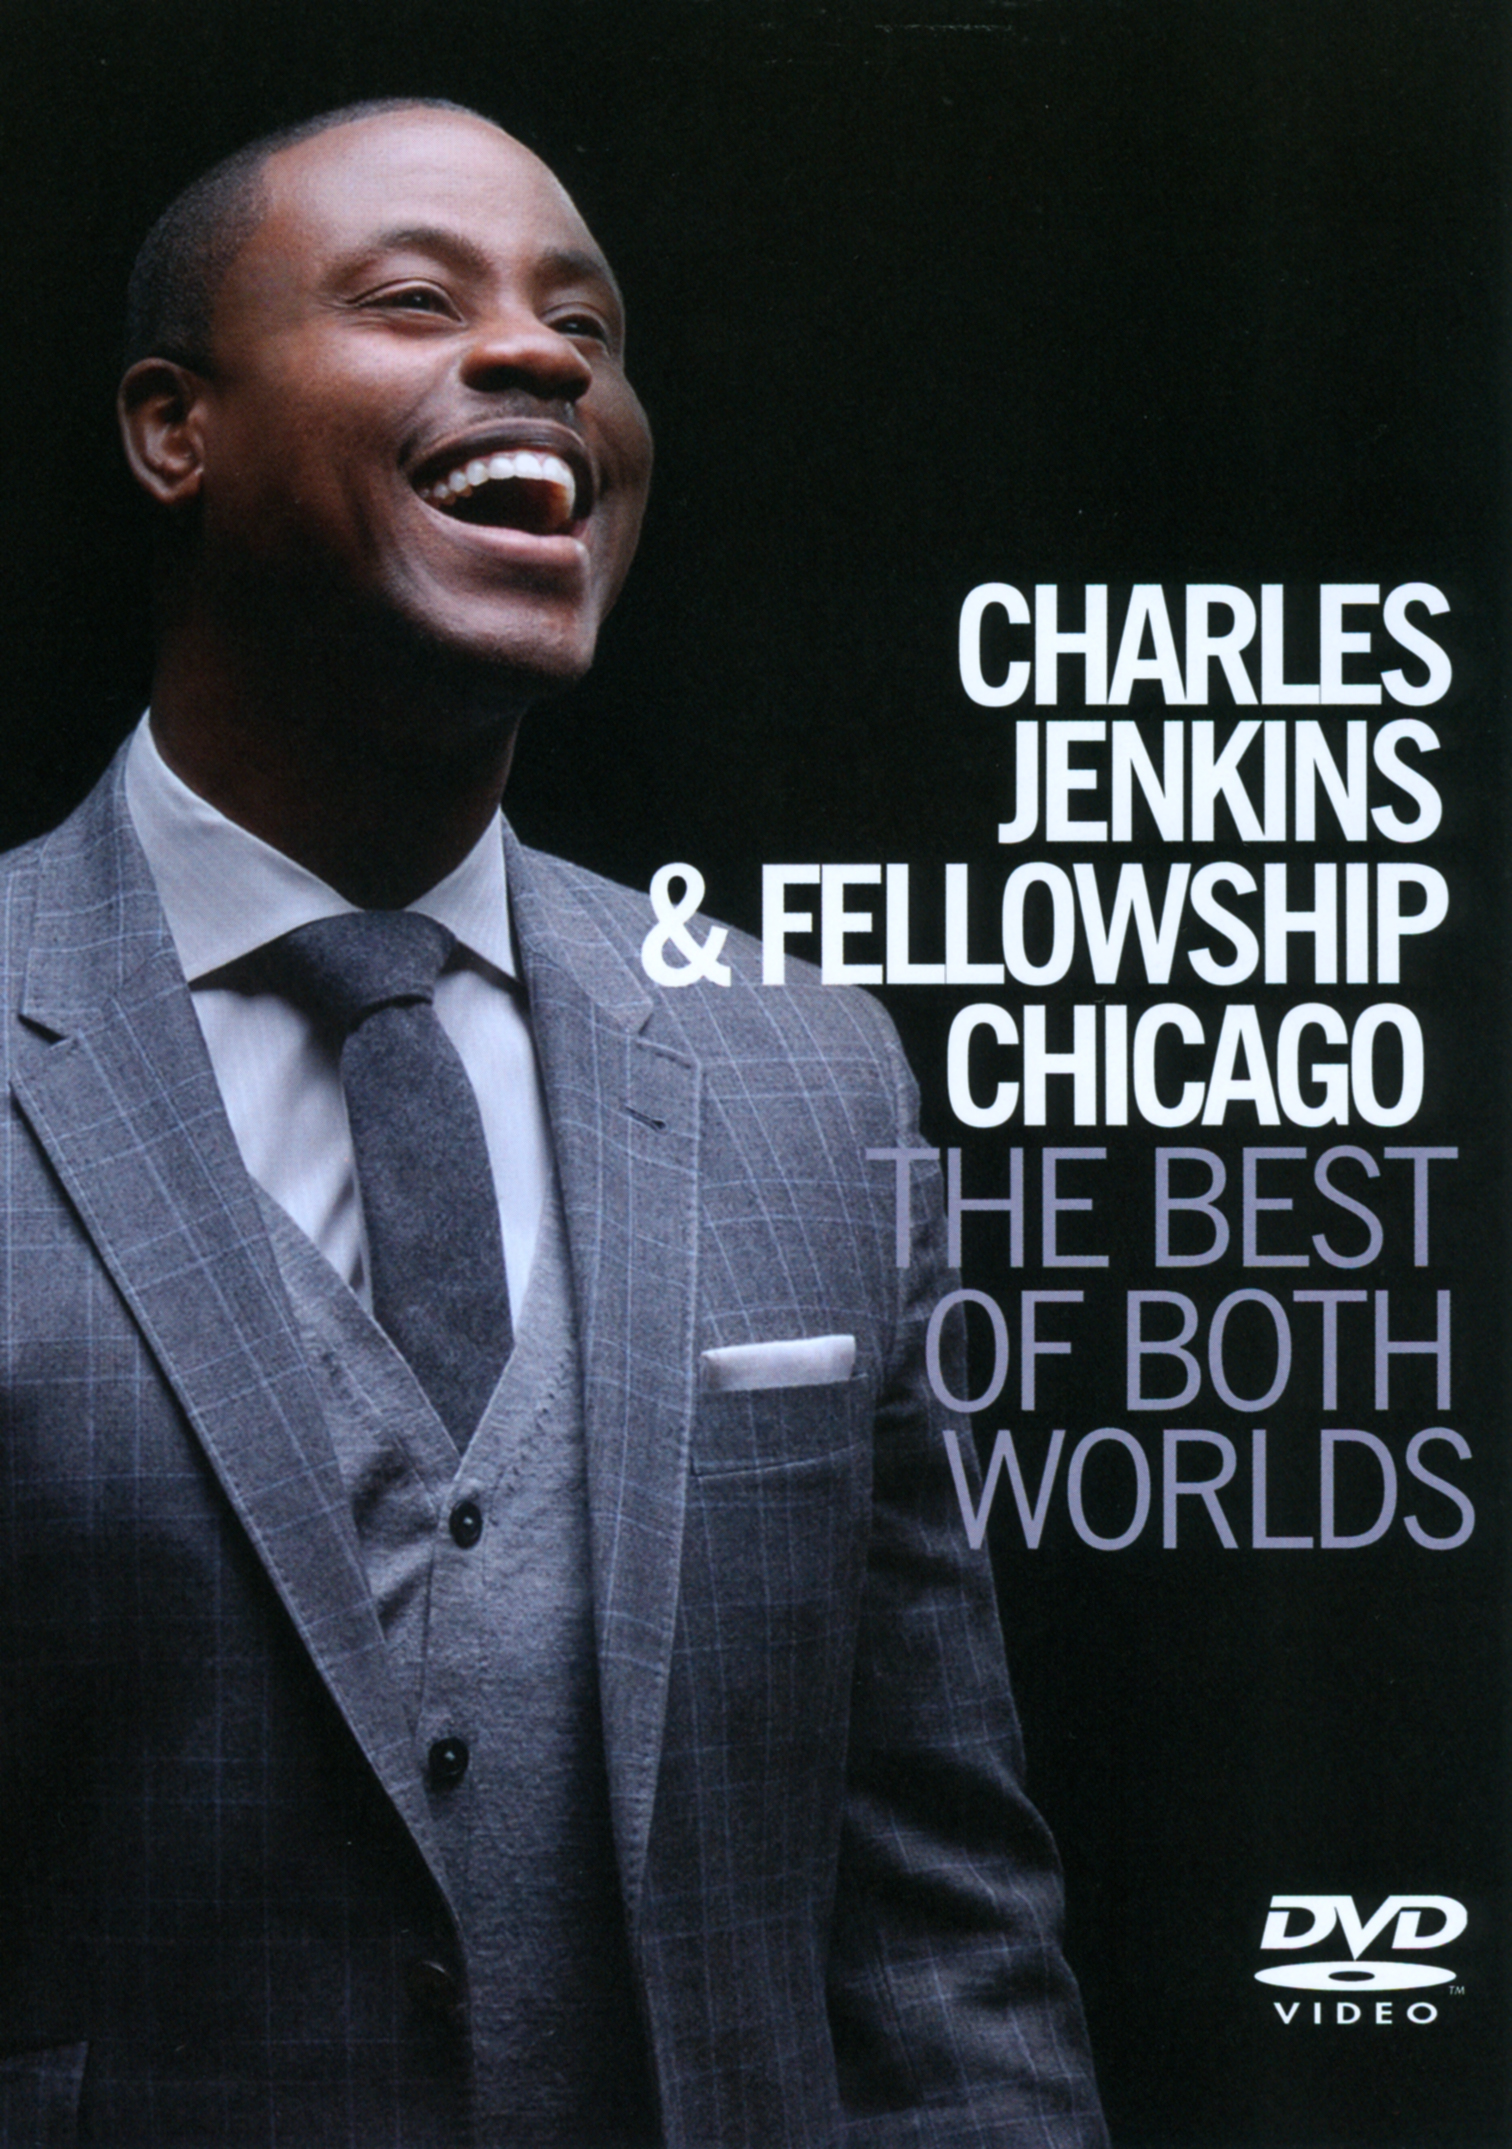 Charles Jenkins and Fellowship Chicago: The Best of Both Worlds